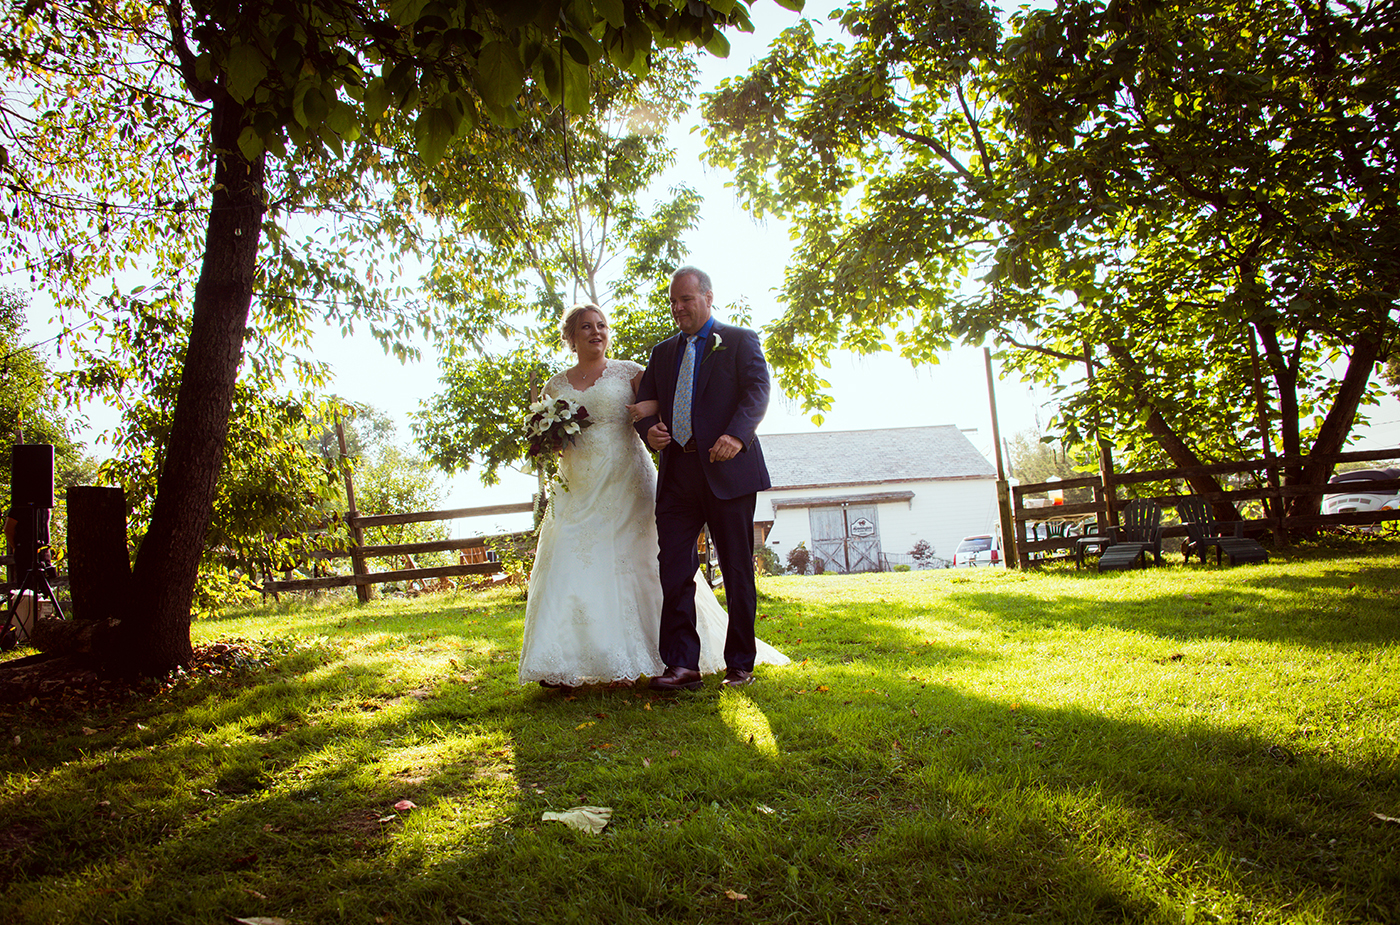 All Occasions Photography Albany NY - Wedding Photography Outdoor Shot